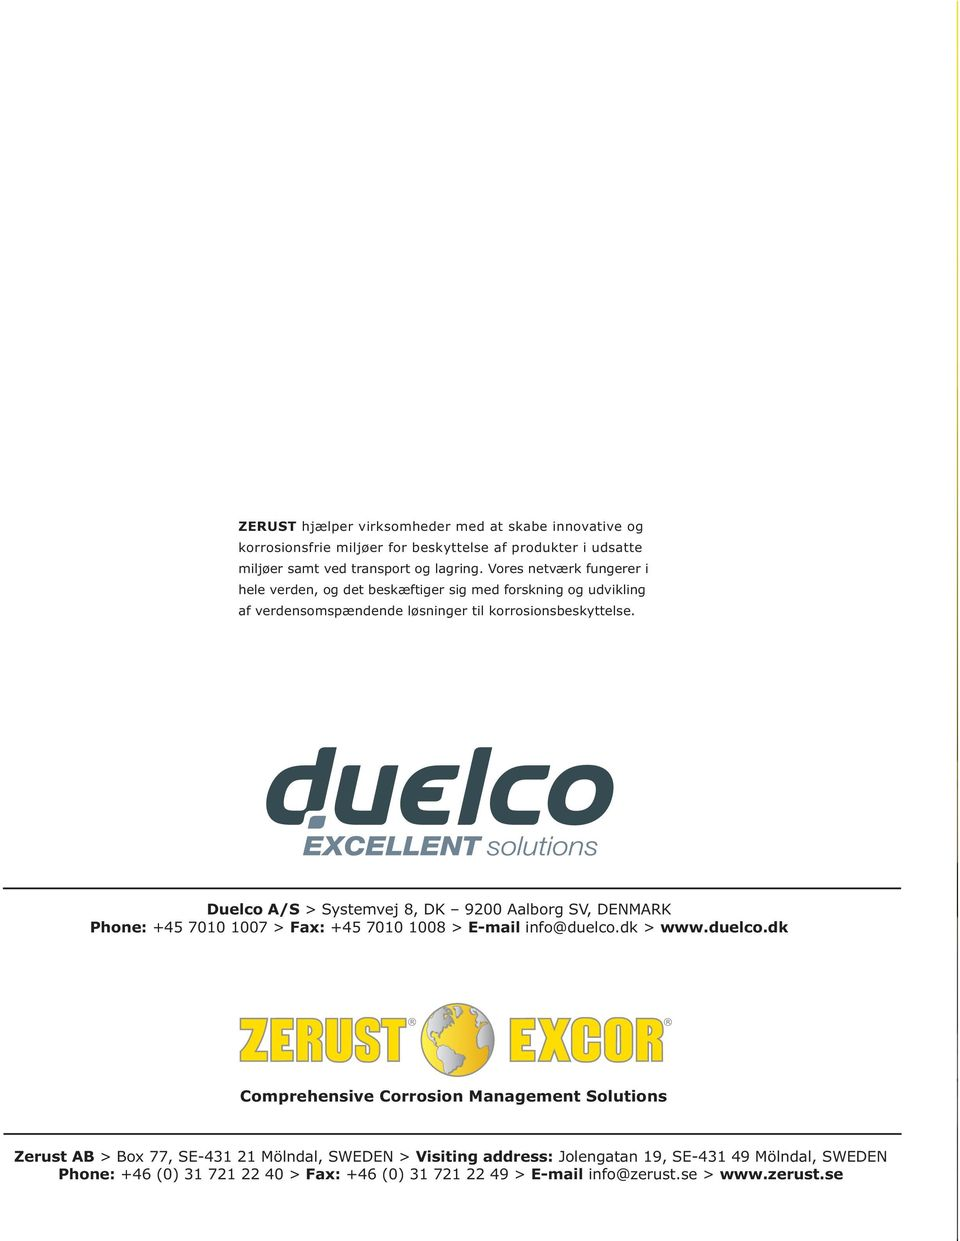 Duelco A/S > Systemvej 8, DK 9200 Aalborg SV, DENMARK Phone: +45 7010 1007 > Fax: +45 7010 1008 > E-mail info@duelco.